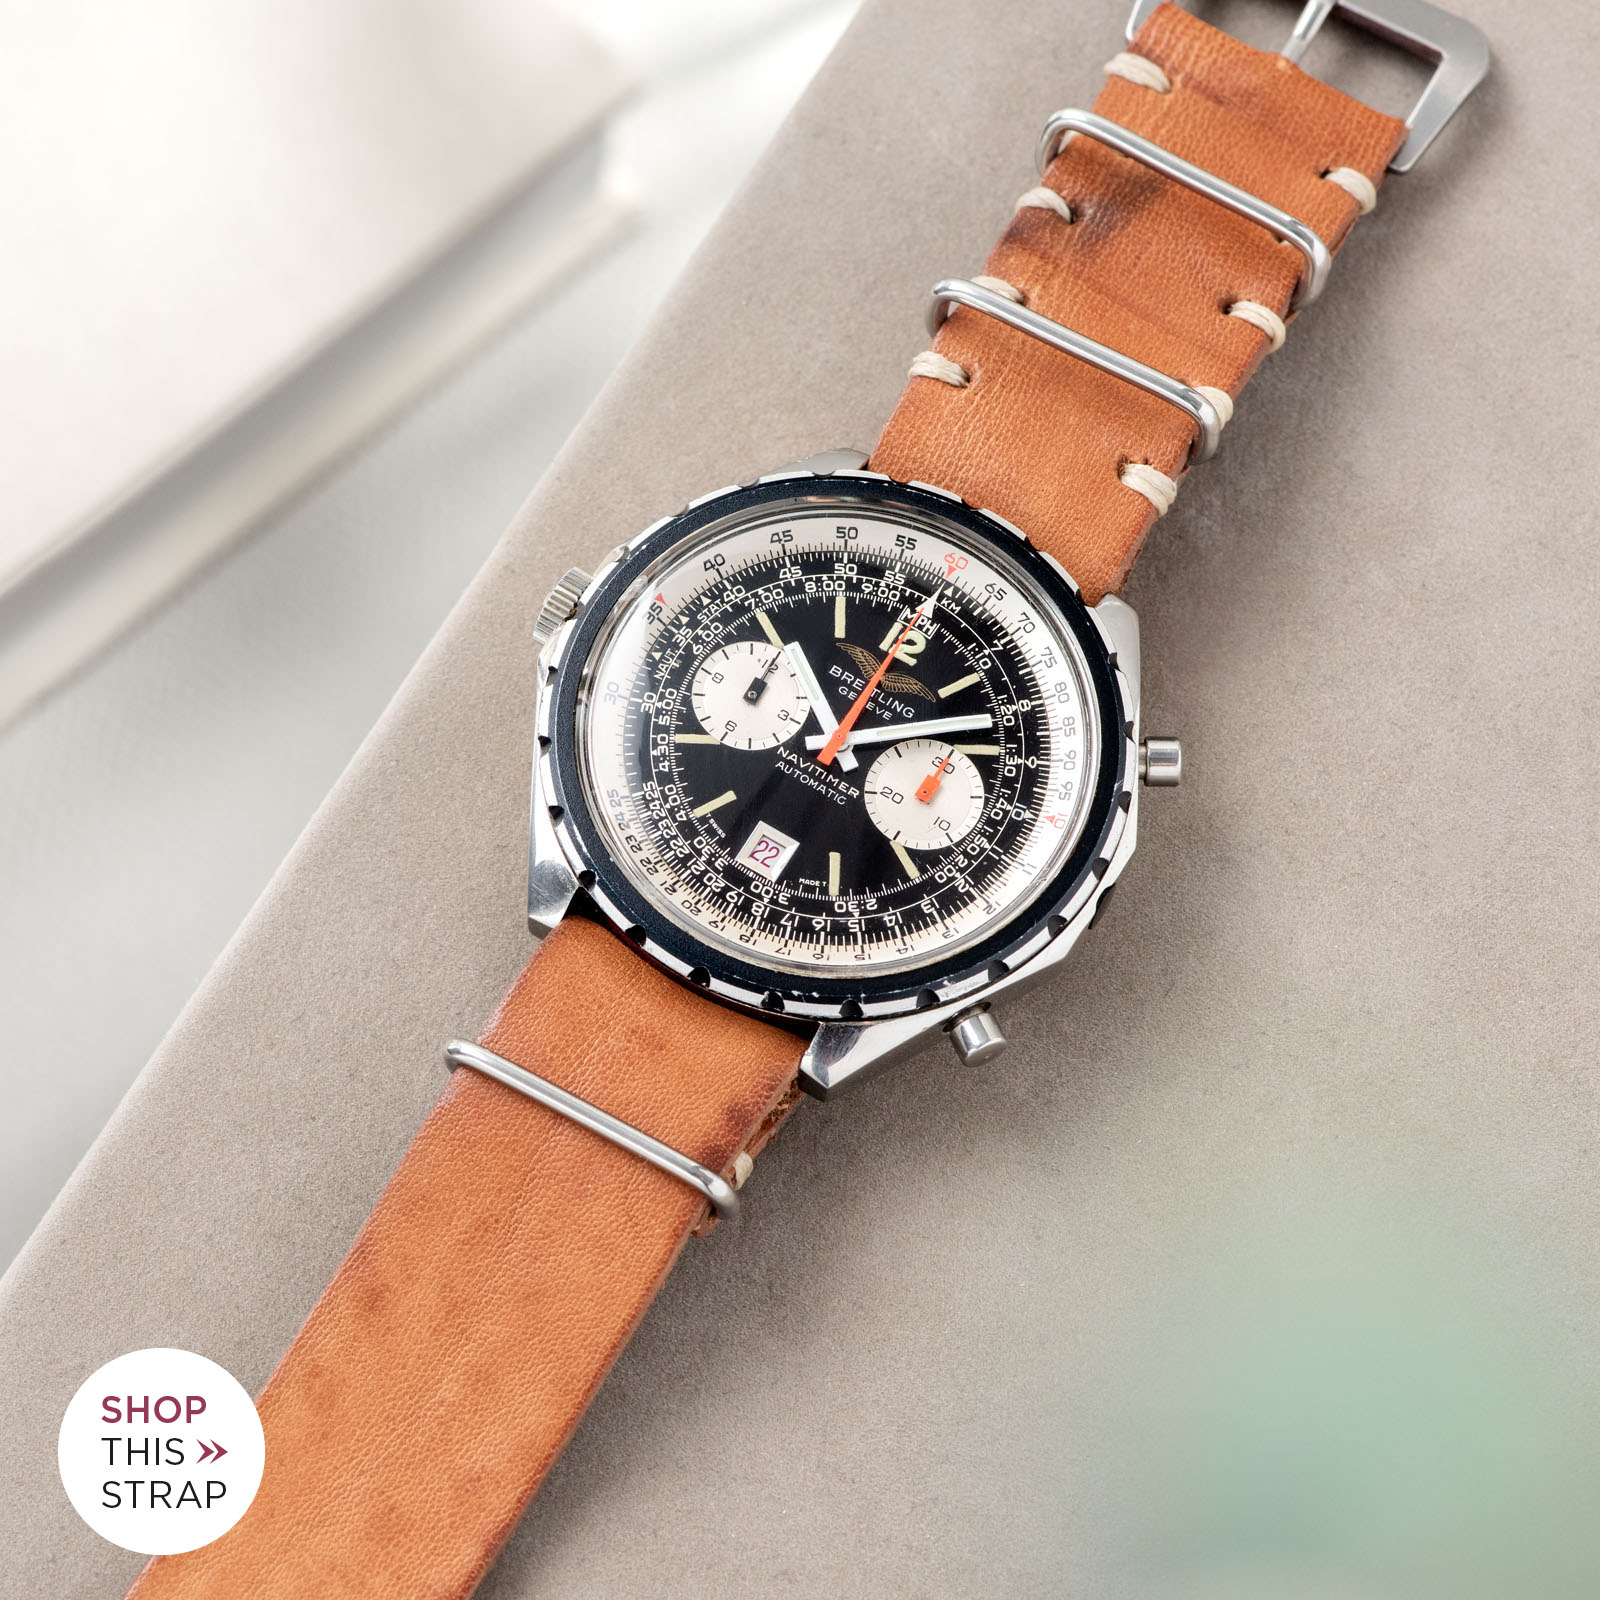 Bulang and Sons_Strapguide_Breitling Navitimer ref issued to iraqi air force ref 1806_Caramel Brown Nato Leather Watch Strap_001